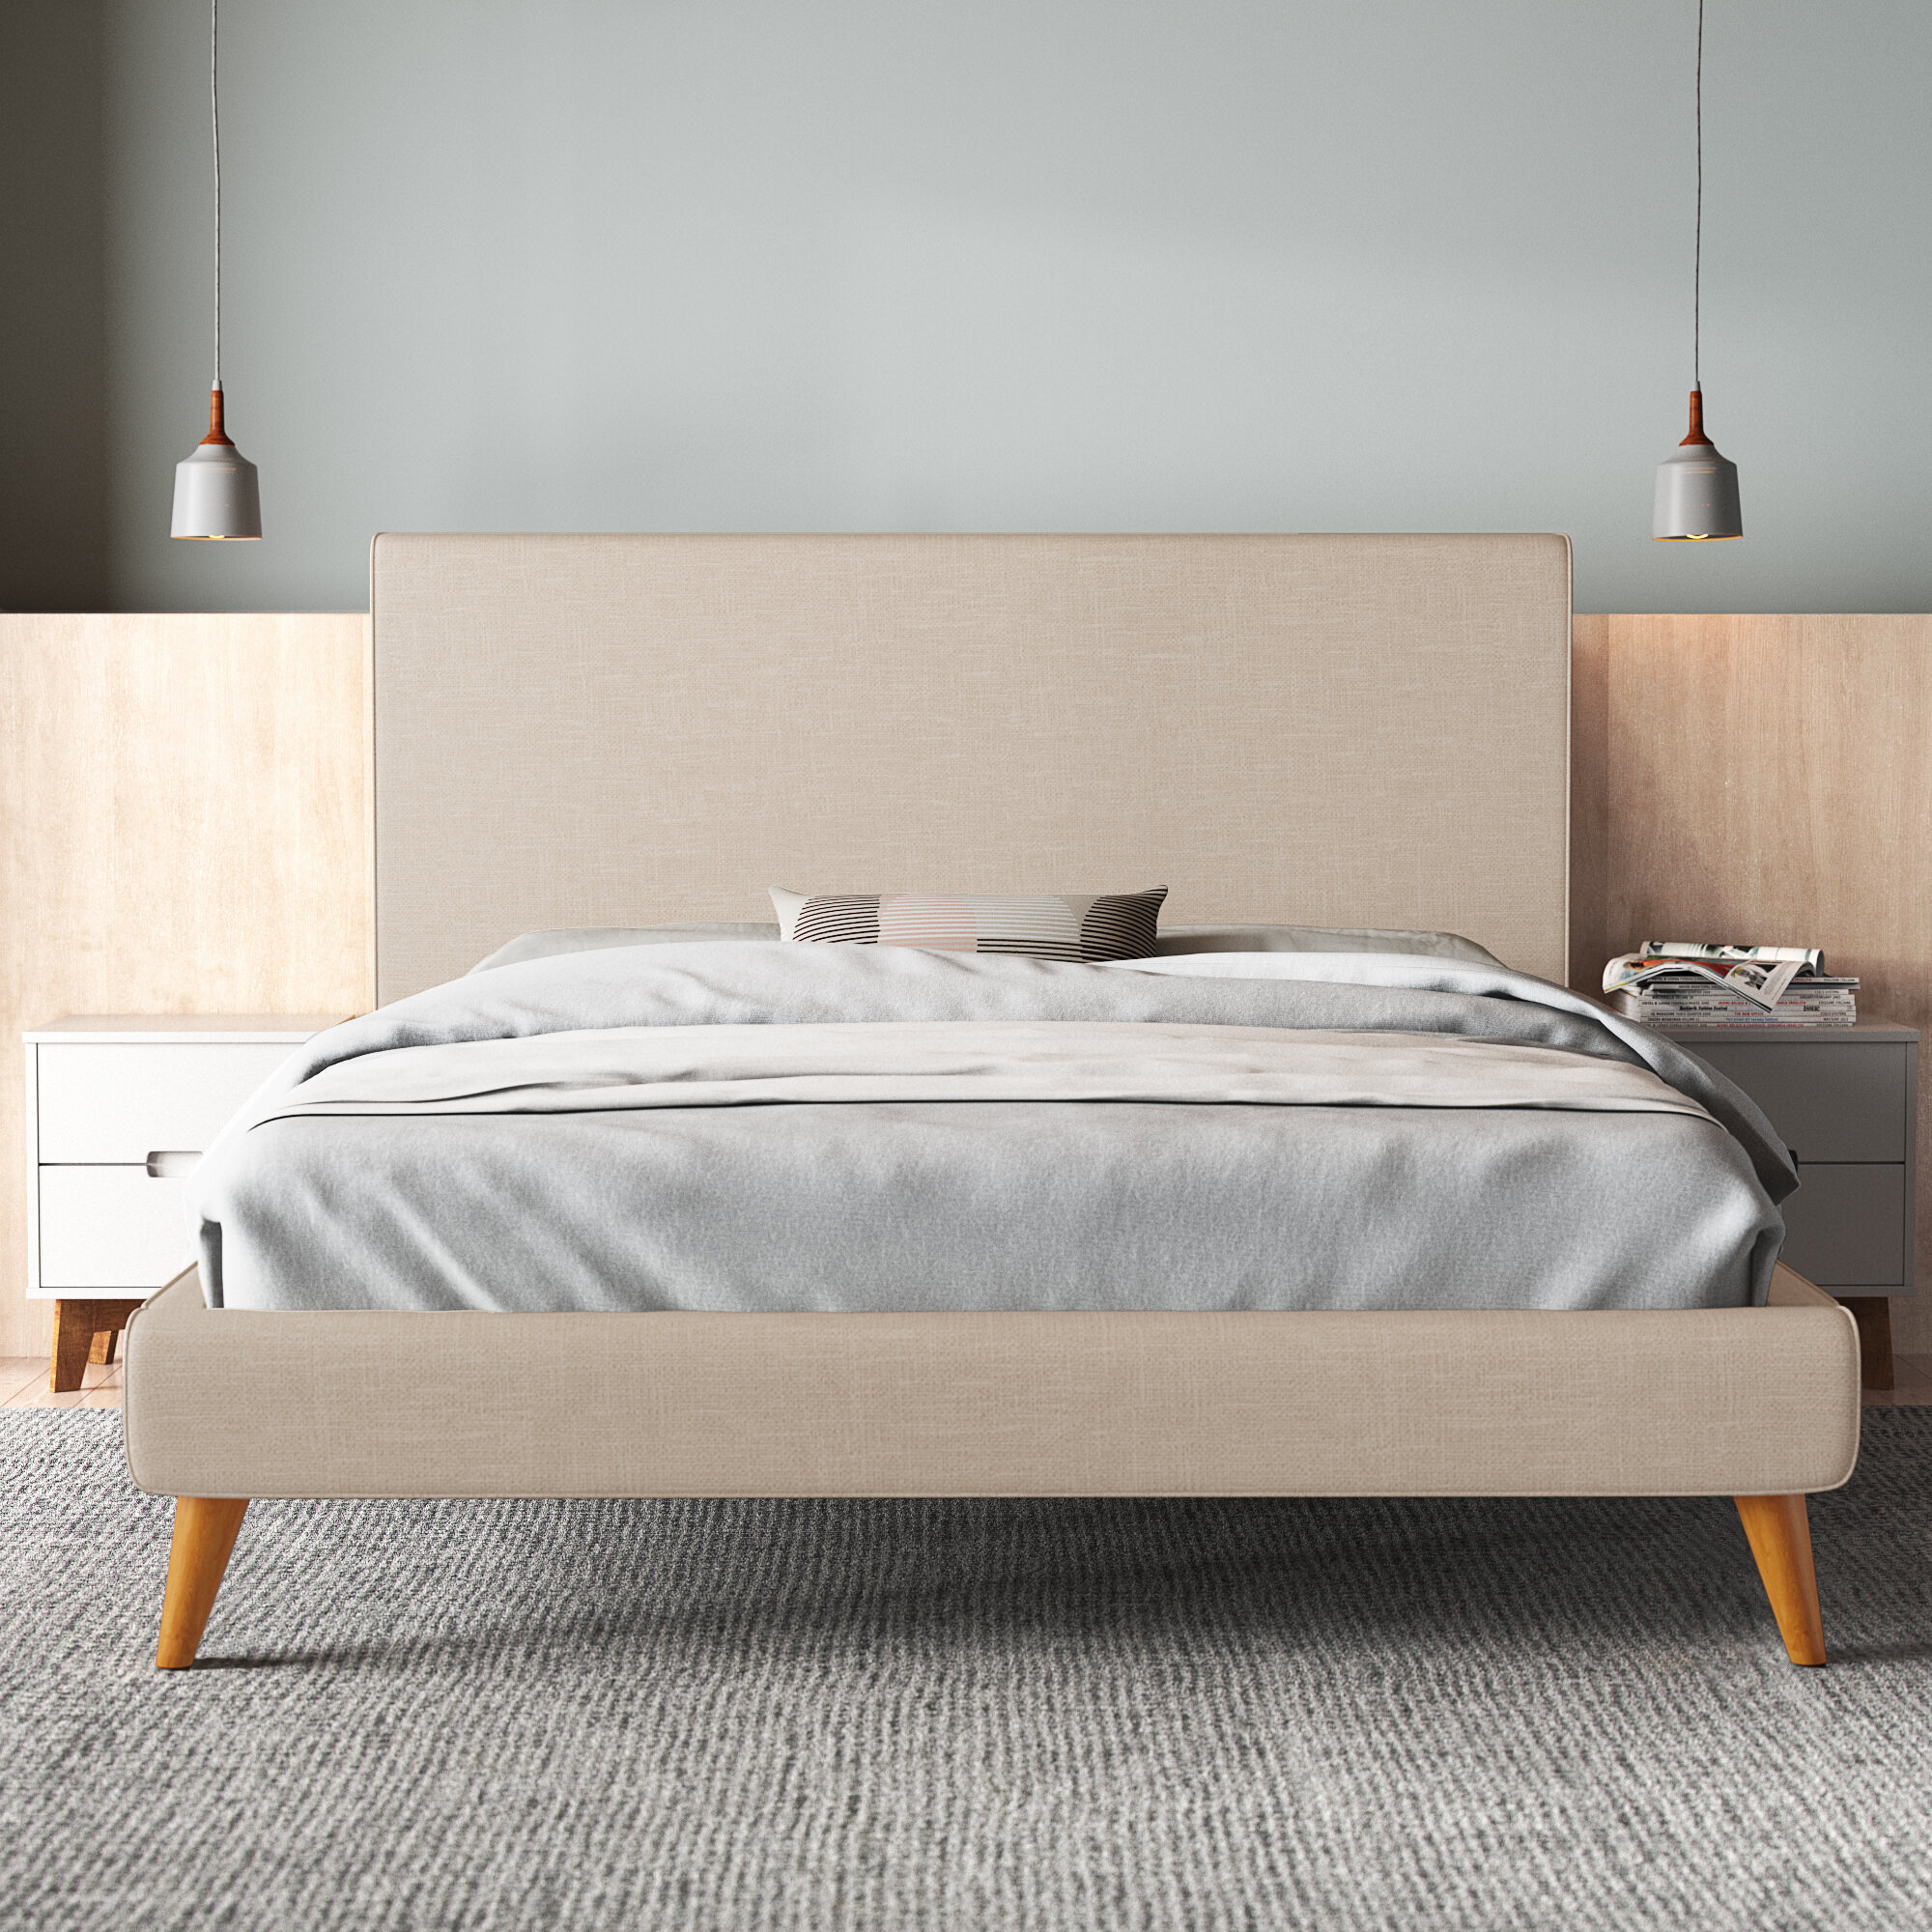 Williams Tufted Upholstered Low Profile Platform Bed Reviews Allmodern